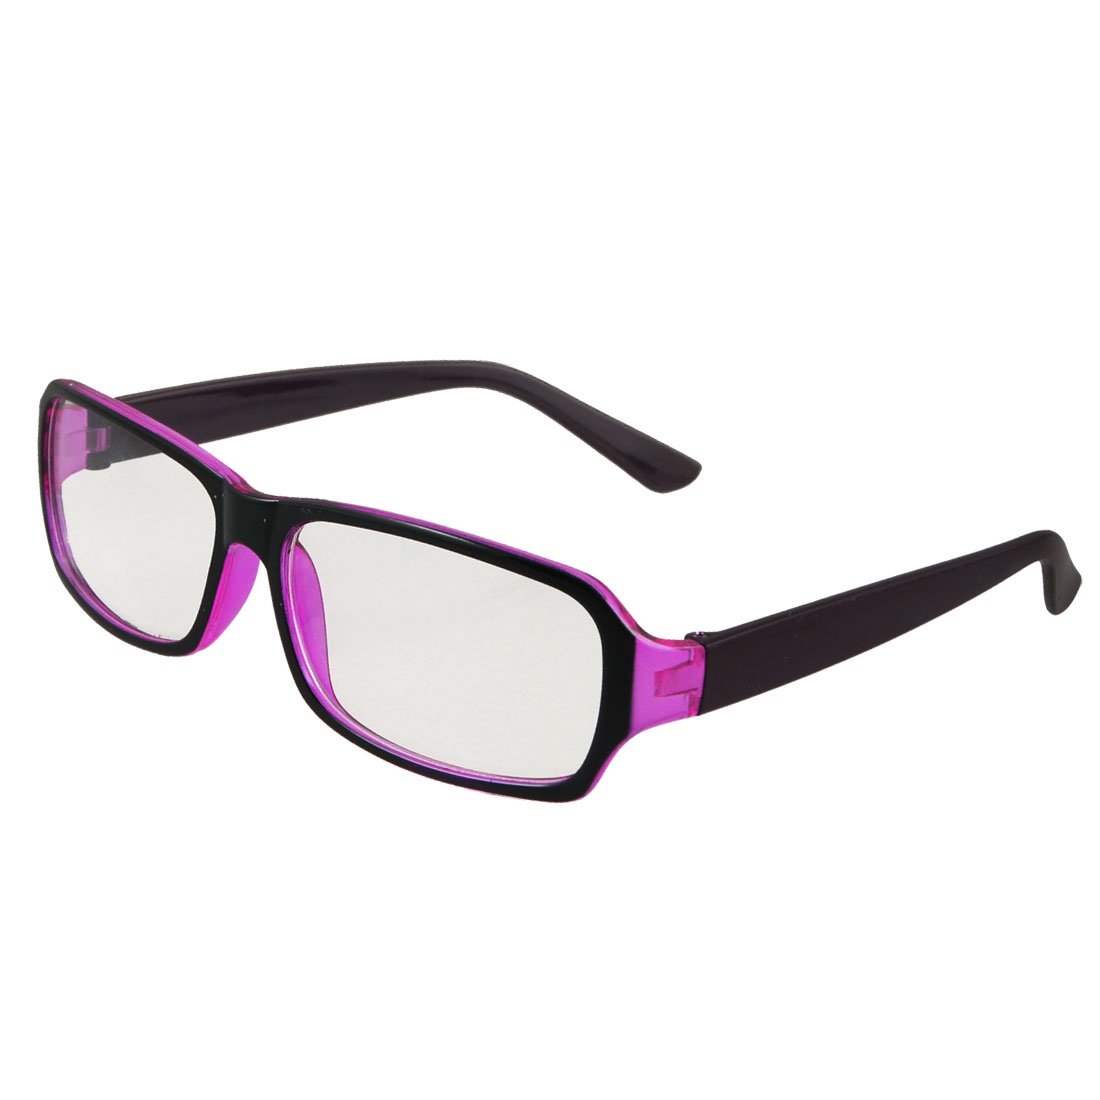 Ladies Black Purple Plastic Full Frame Single Bridge Clear Lens Plain Glasses